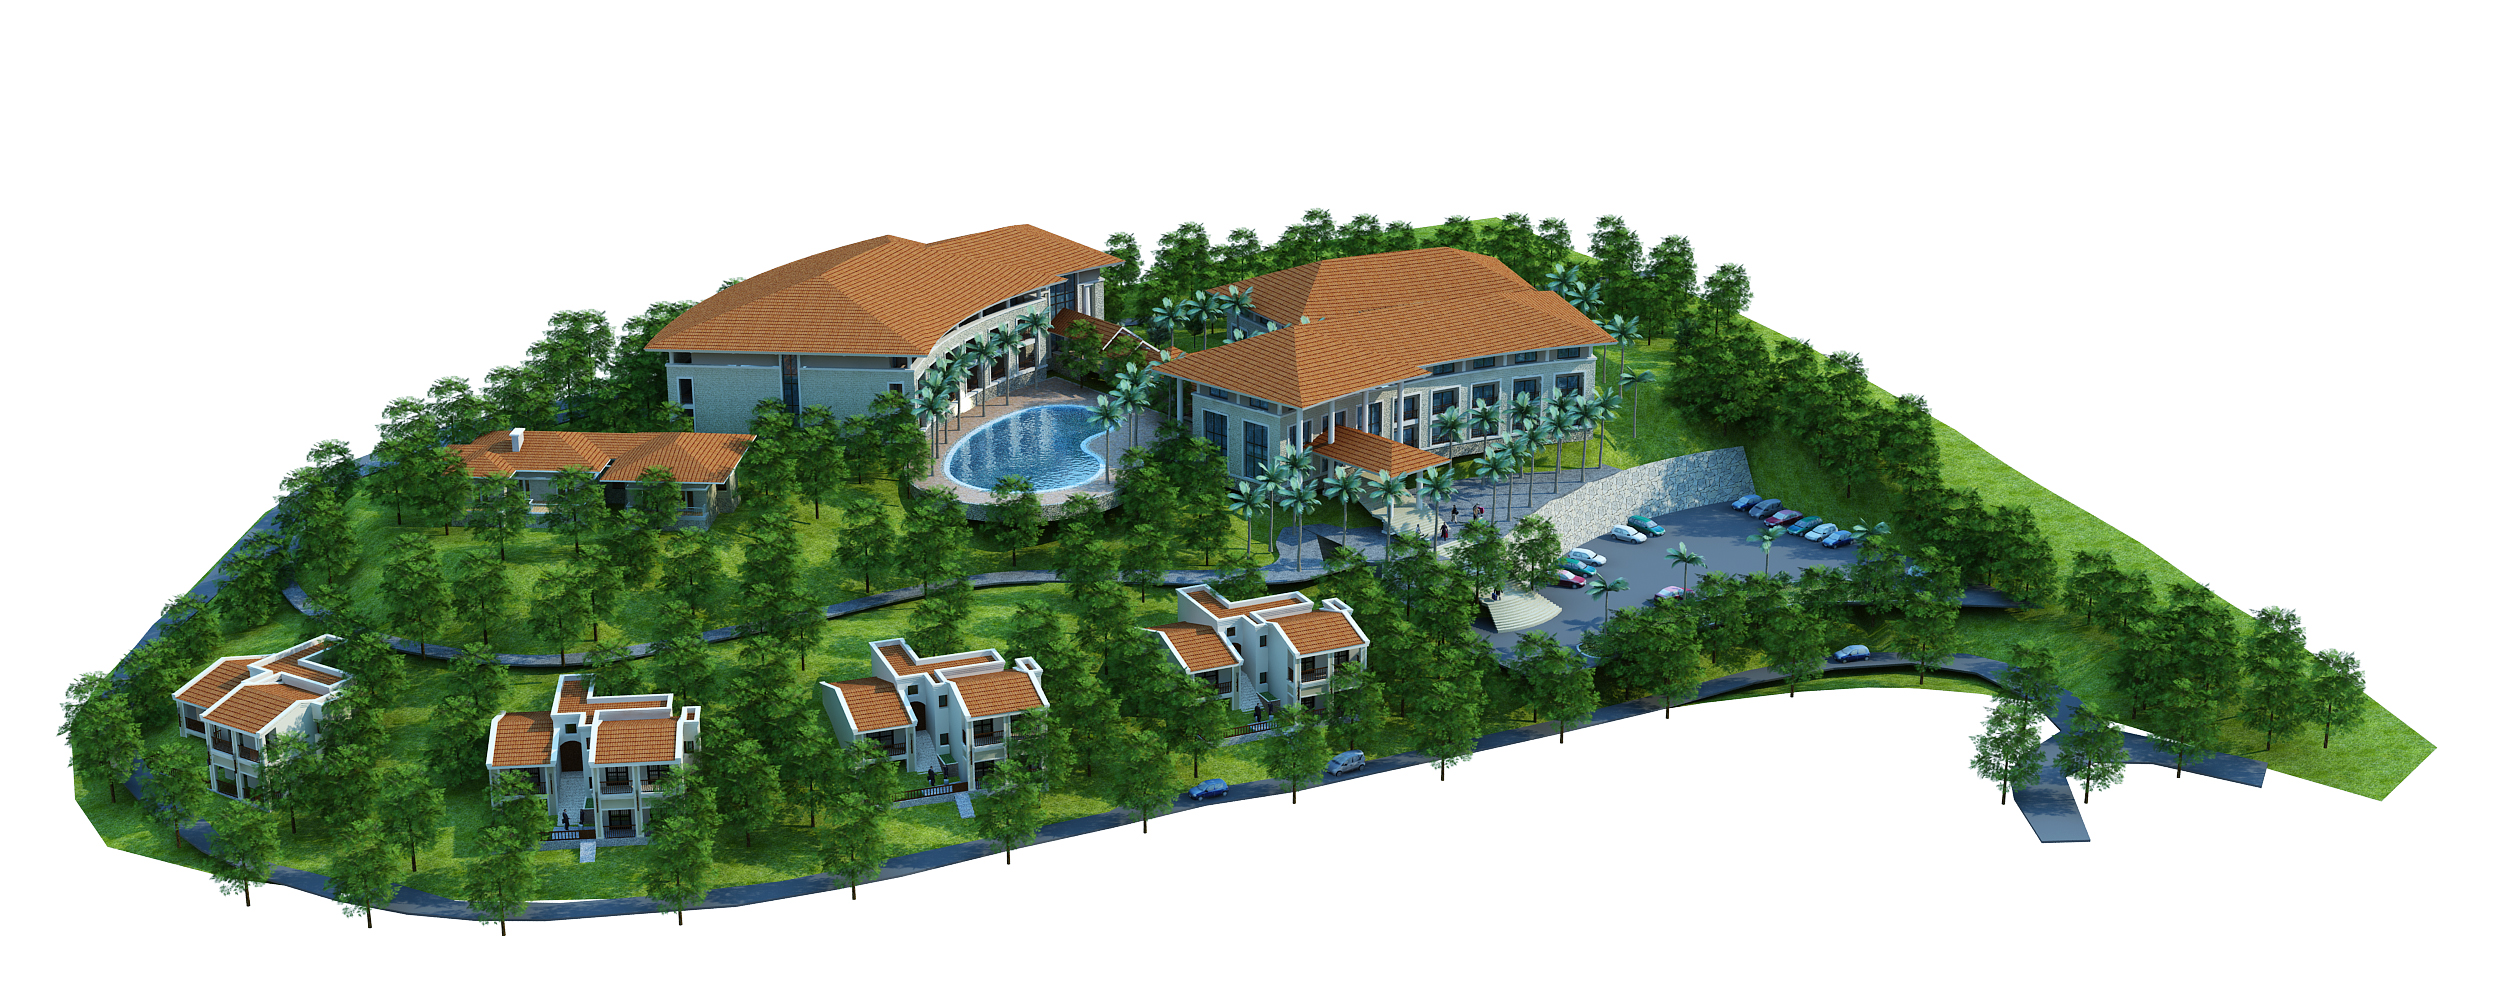 moutain resort hotel 3d model max digər 159068